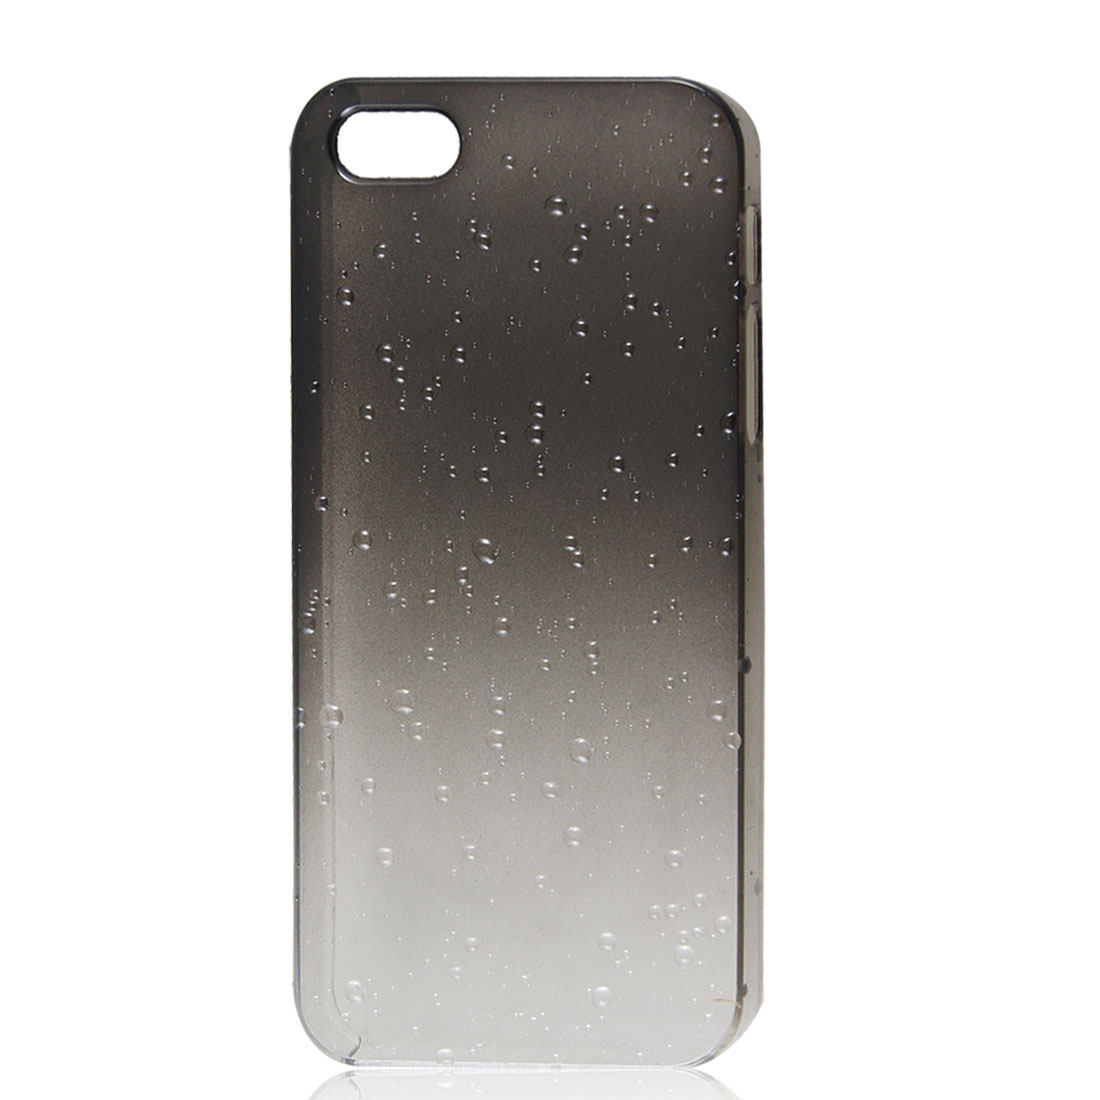 3D Raindrop Water Drop Hard Back Cover Case Gray Clear for Apple iPhone 5 5G